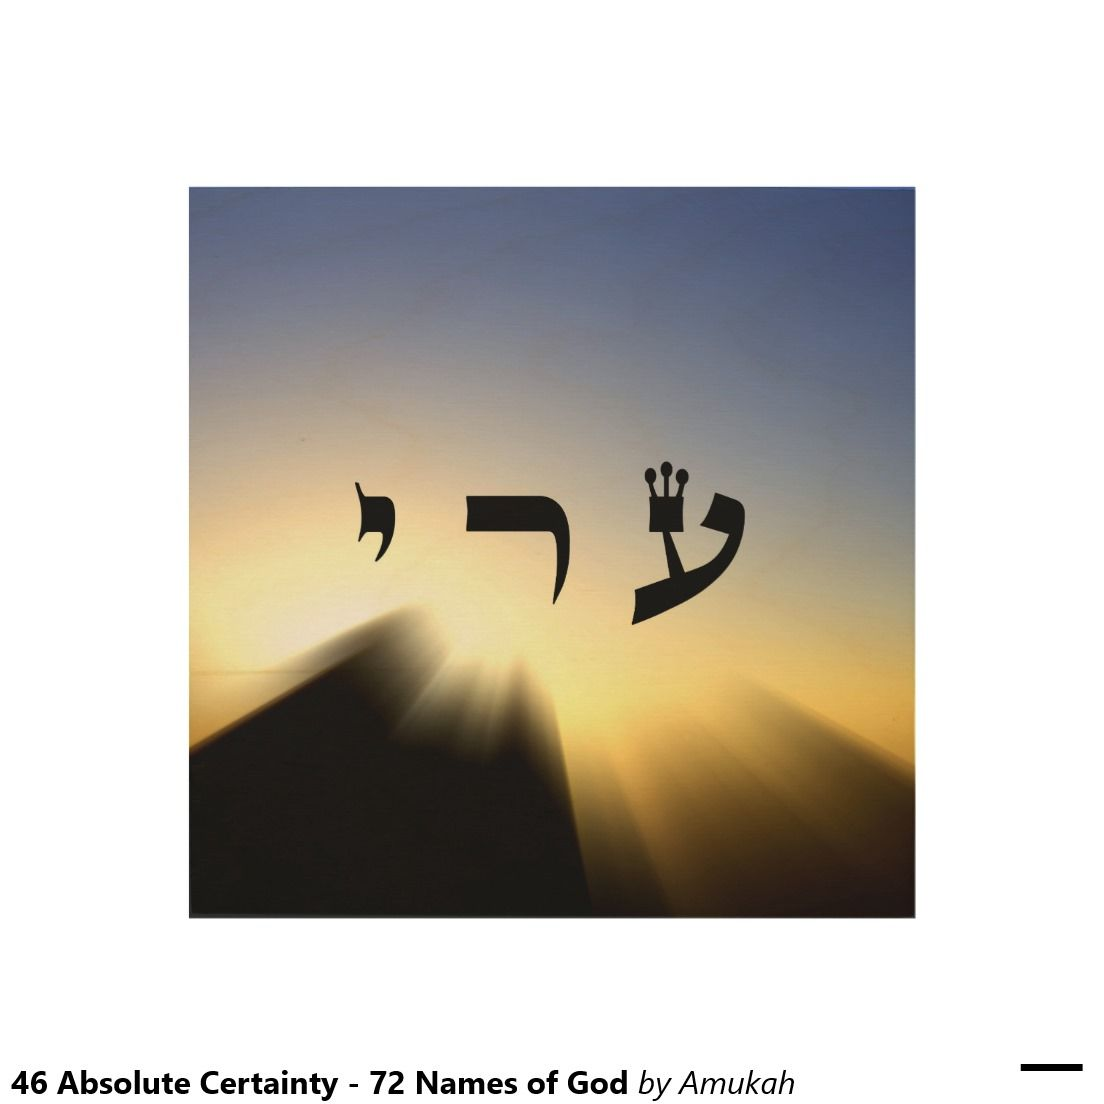 46 Absolute Certainty - 72 Names of God Wood Wall Art | Wood wall ...